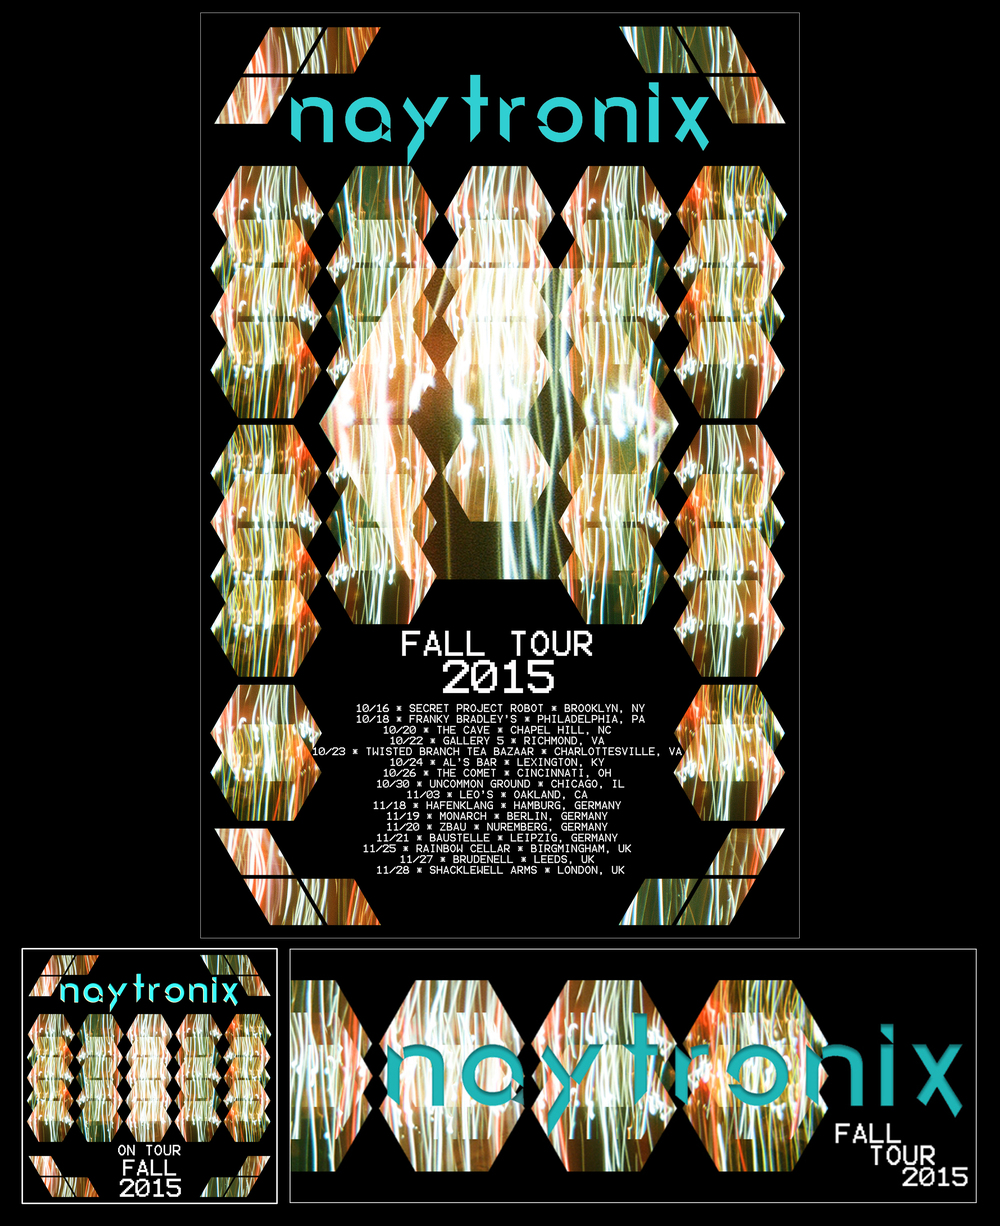 Naytronix_Fall Tour2015_V3-web.jpg